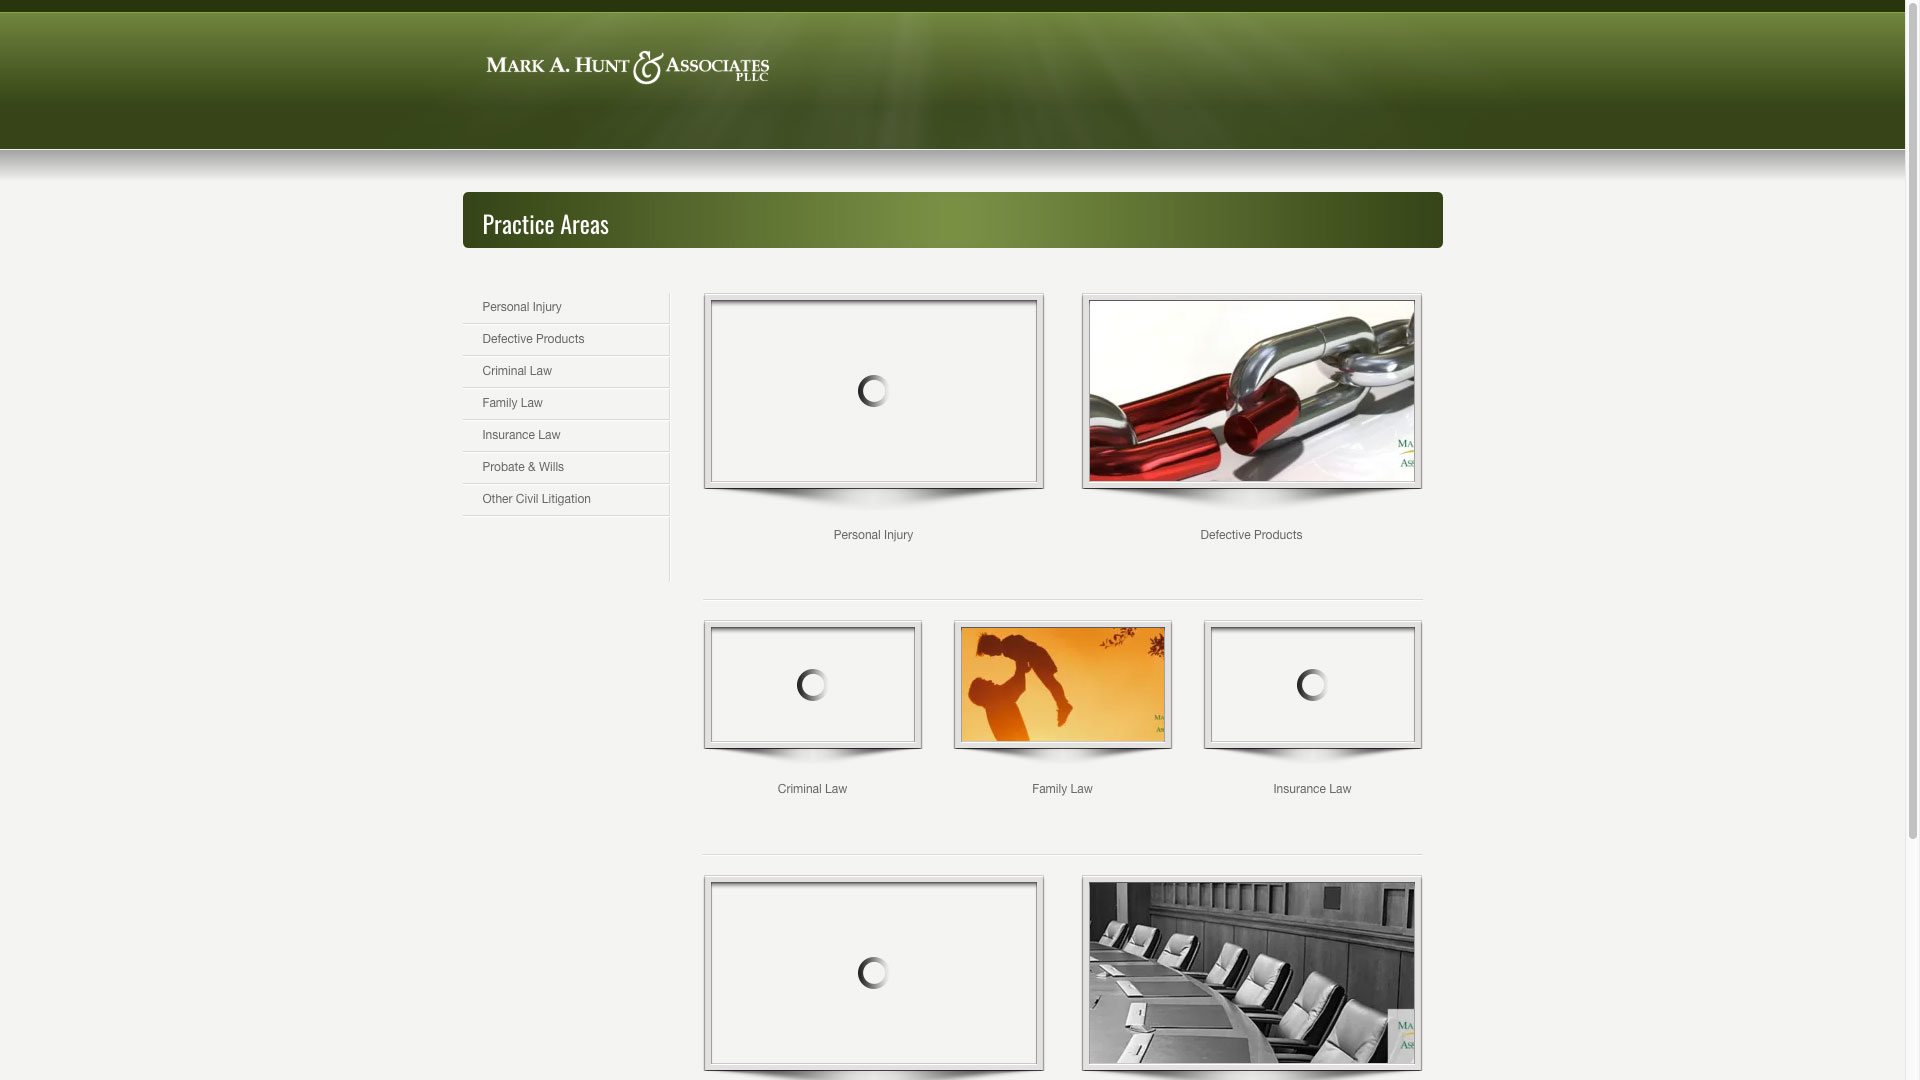 mark-hunt-practice-areas-web-design